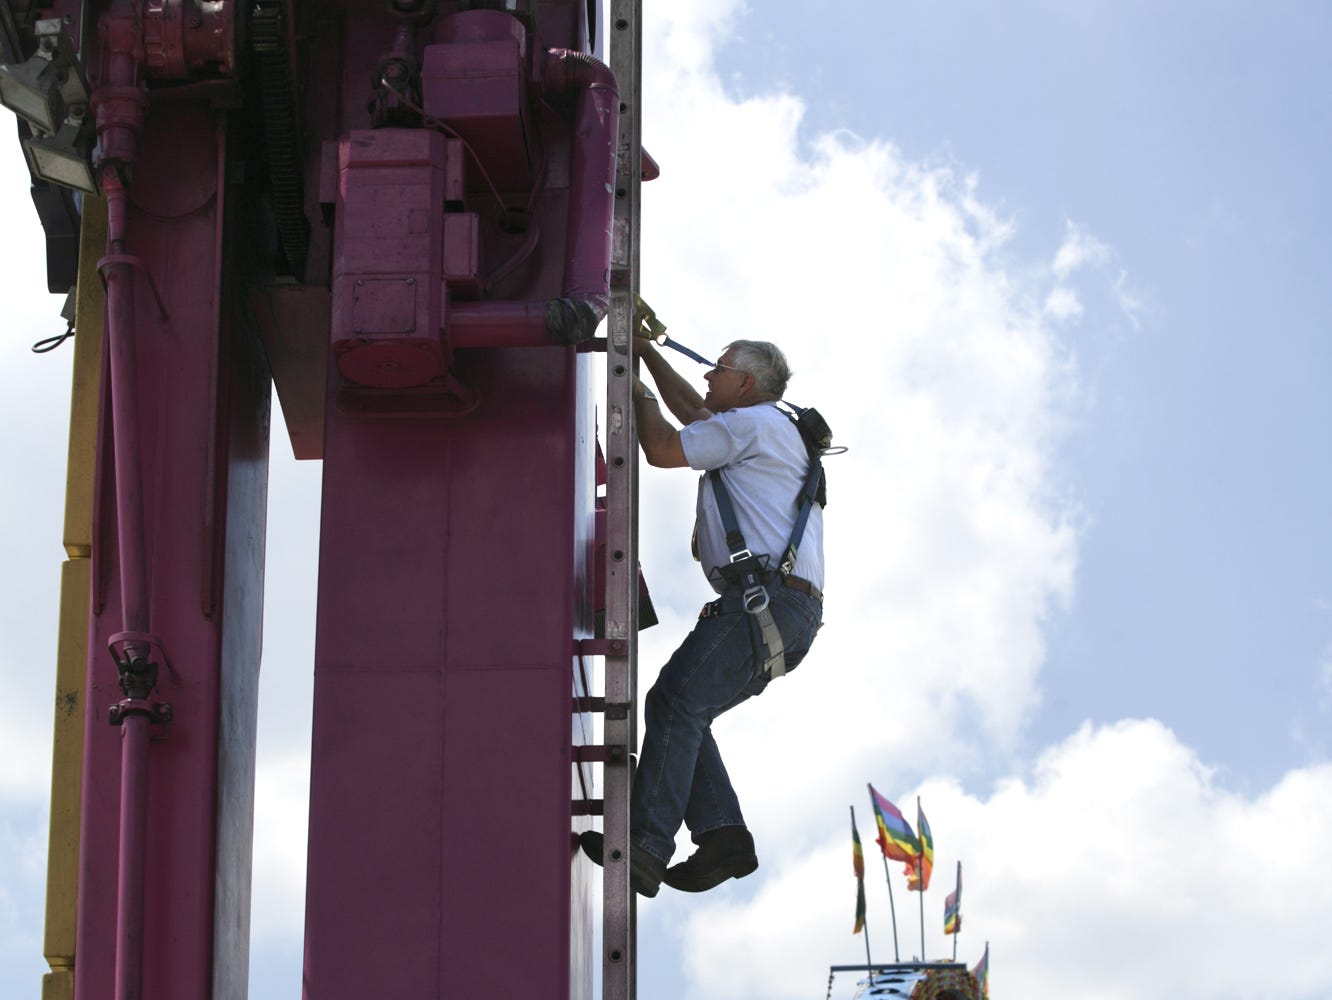 Bob Henderson, a state fair ride inspector, used climbing gear to reach the upper parts of the Inverter ride.  He was one of 10 inspectors who had to approved 43 rides before the state fair opened on Thursday.